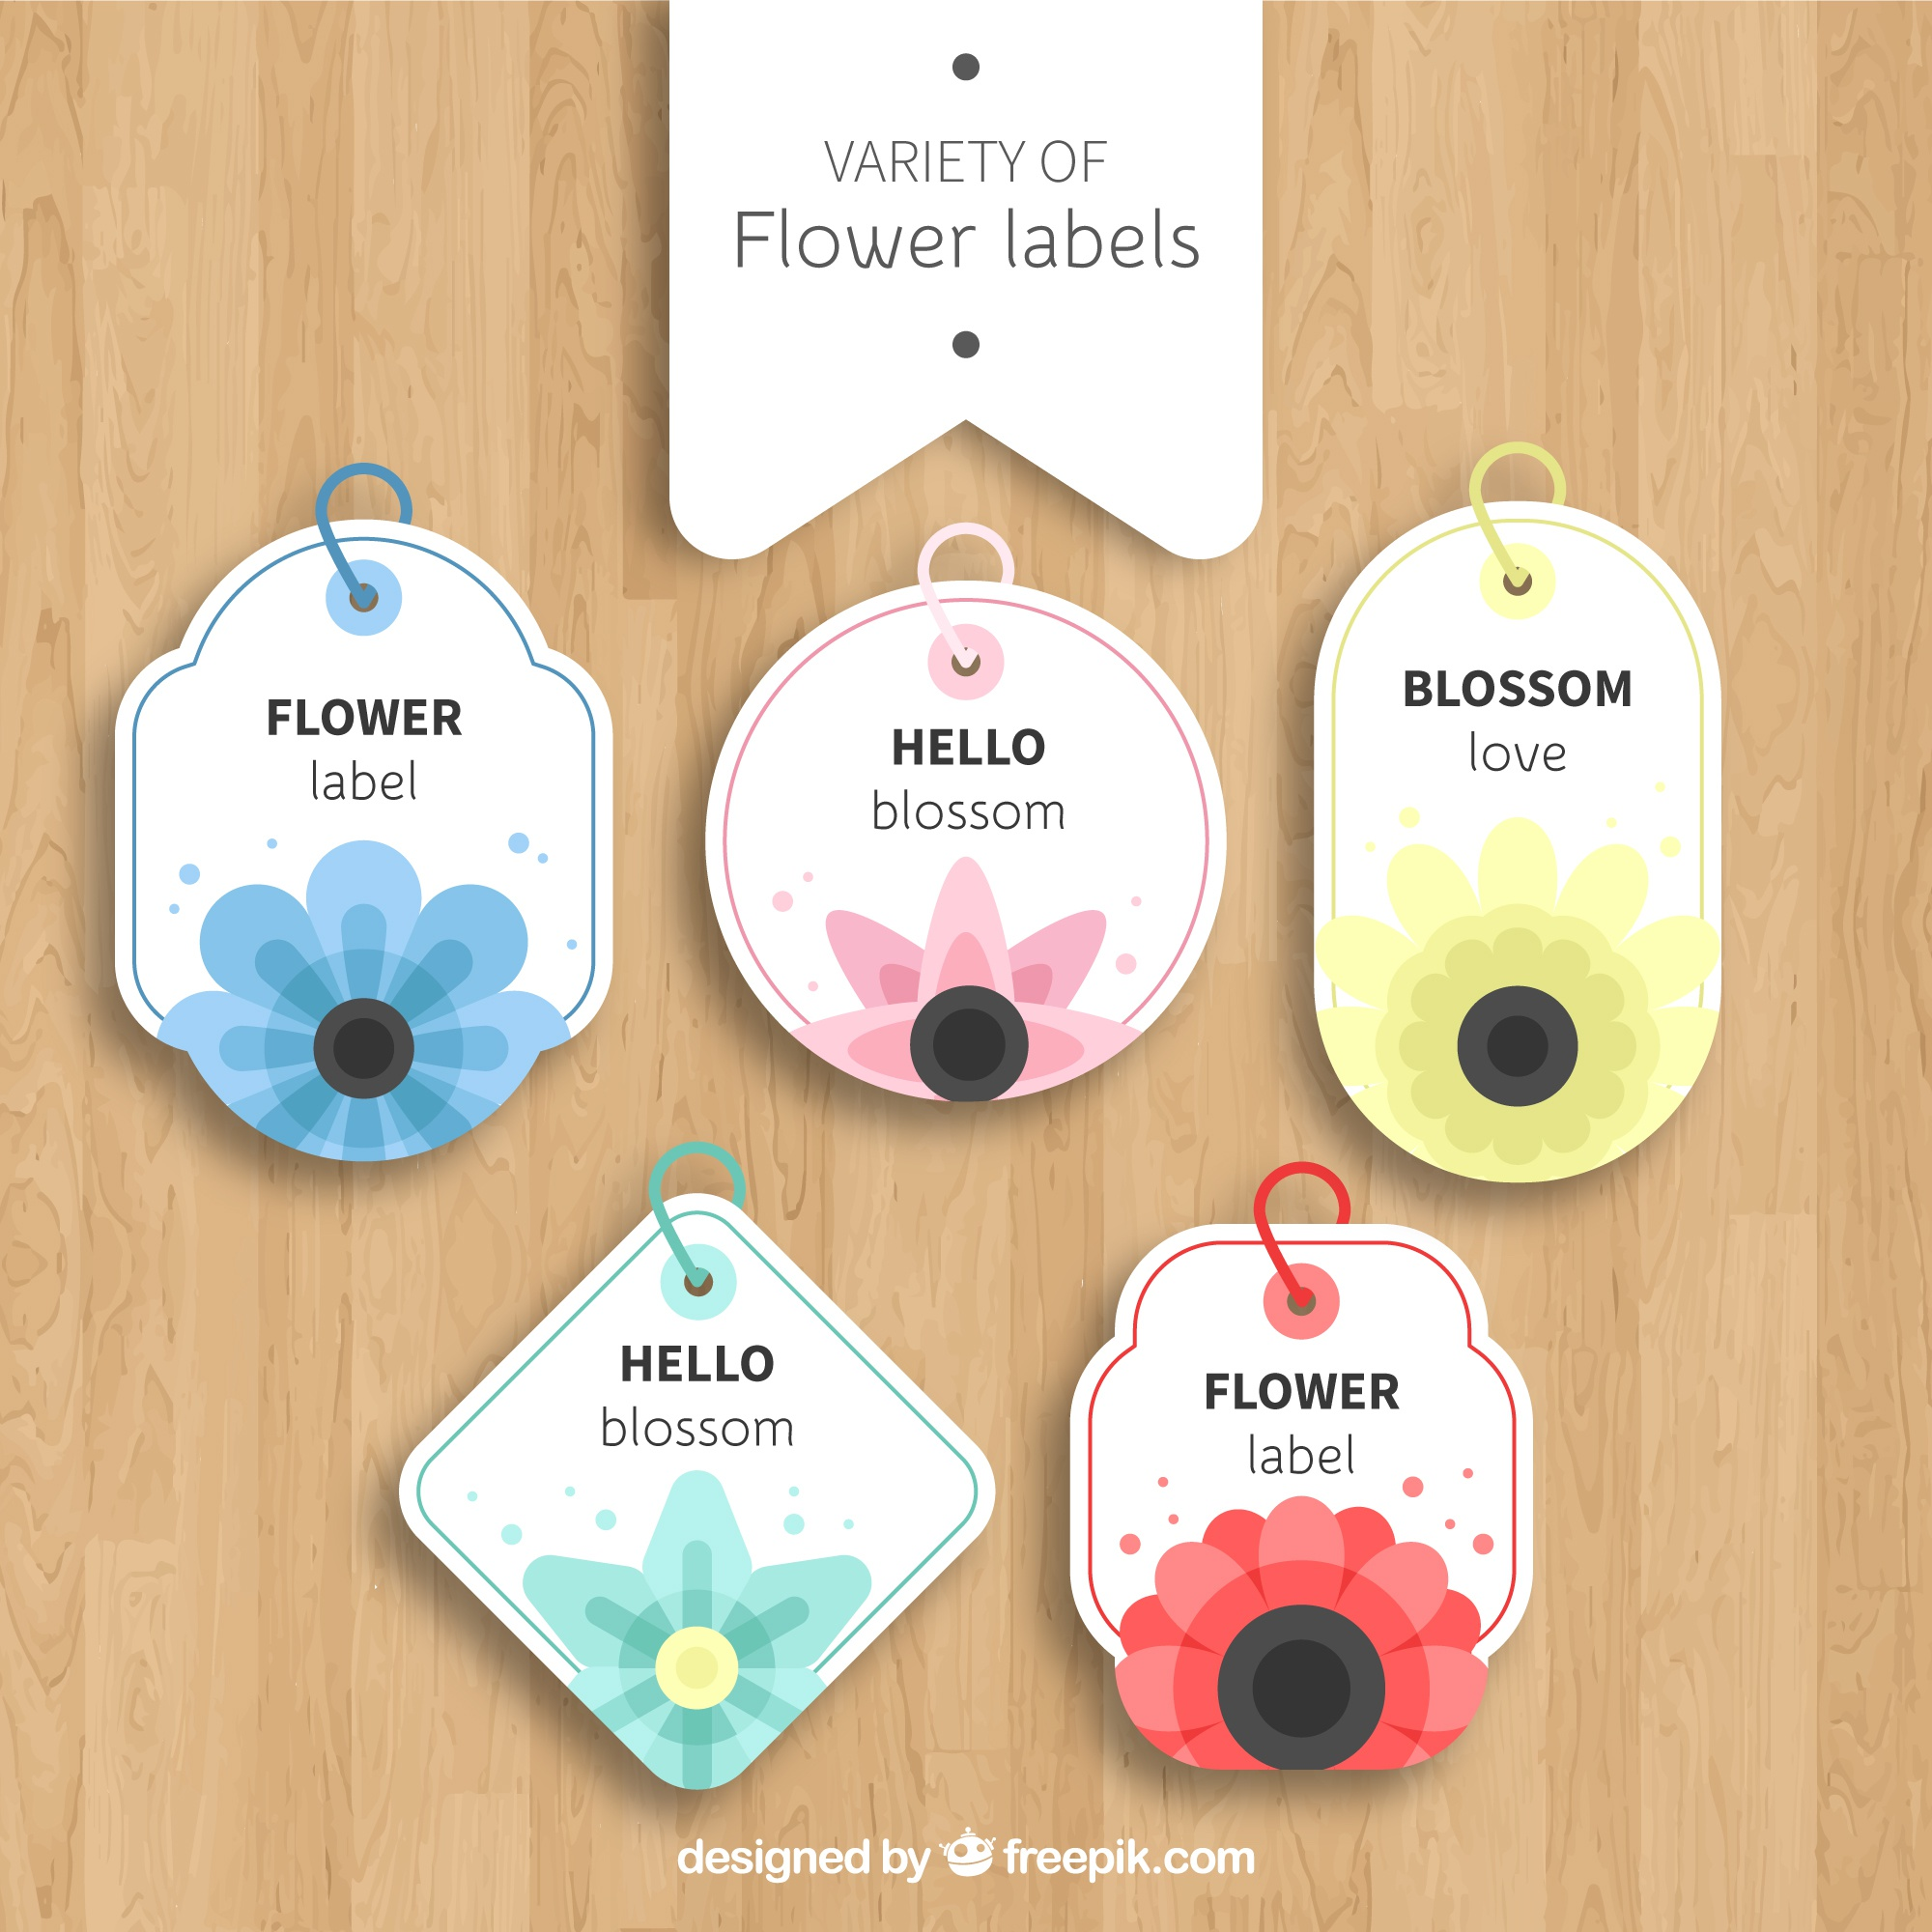 Variety of flower labels with flat design